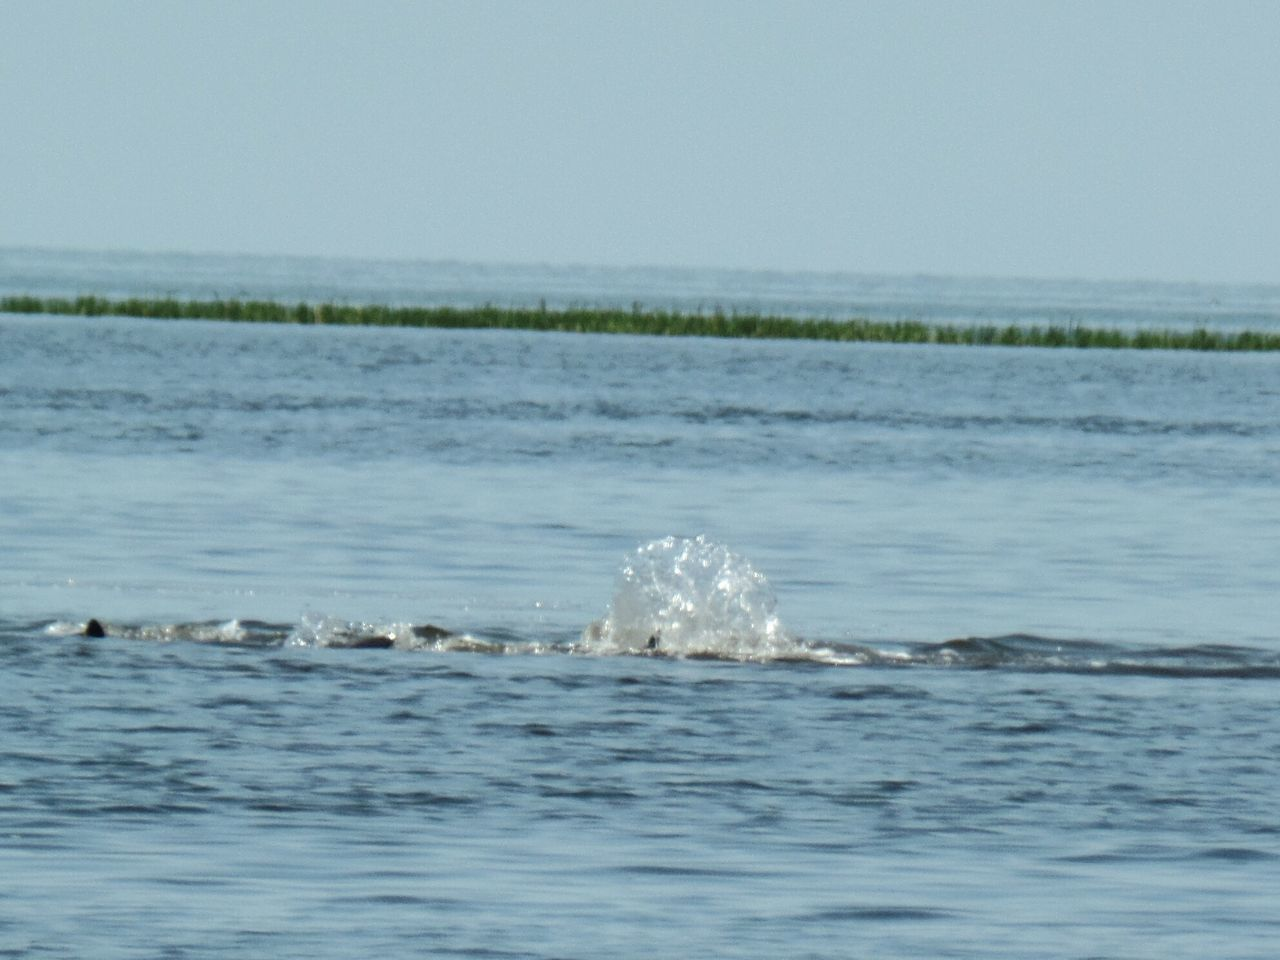 Floridaliving  Natural Beauty Naturelovers Naturephotography Yankeetown Florida Spring2016 Oceanview Checkthis Out Dolphins Playing Dolphinlover Dolphins Swimming Florida Beaches Florida Skies Mothers Day Nature Photography Eye4photography  Florida Life NiceShot Yankeetown Fl MyPics Naturelovers Eye4photography Naturephotography Florida Beautiful Day Checkmeout Floridafishing